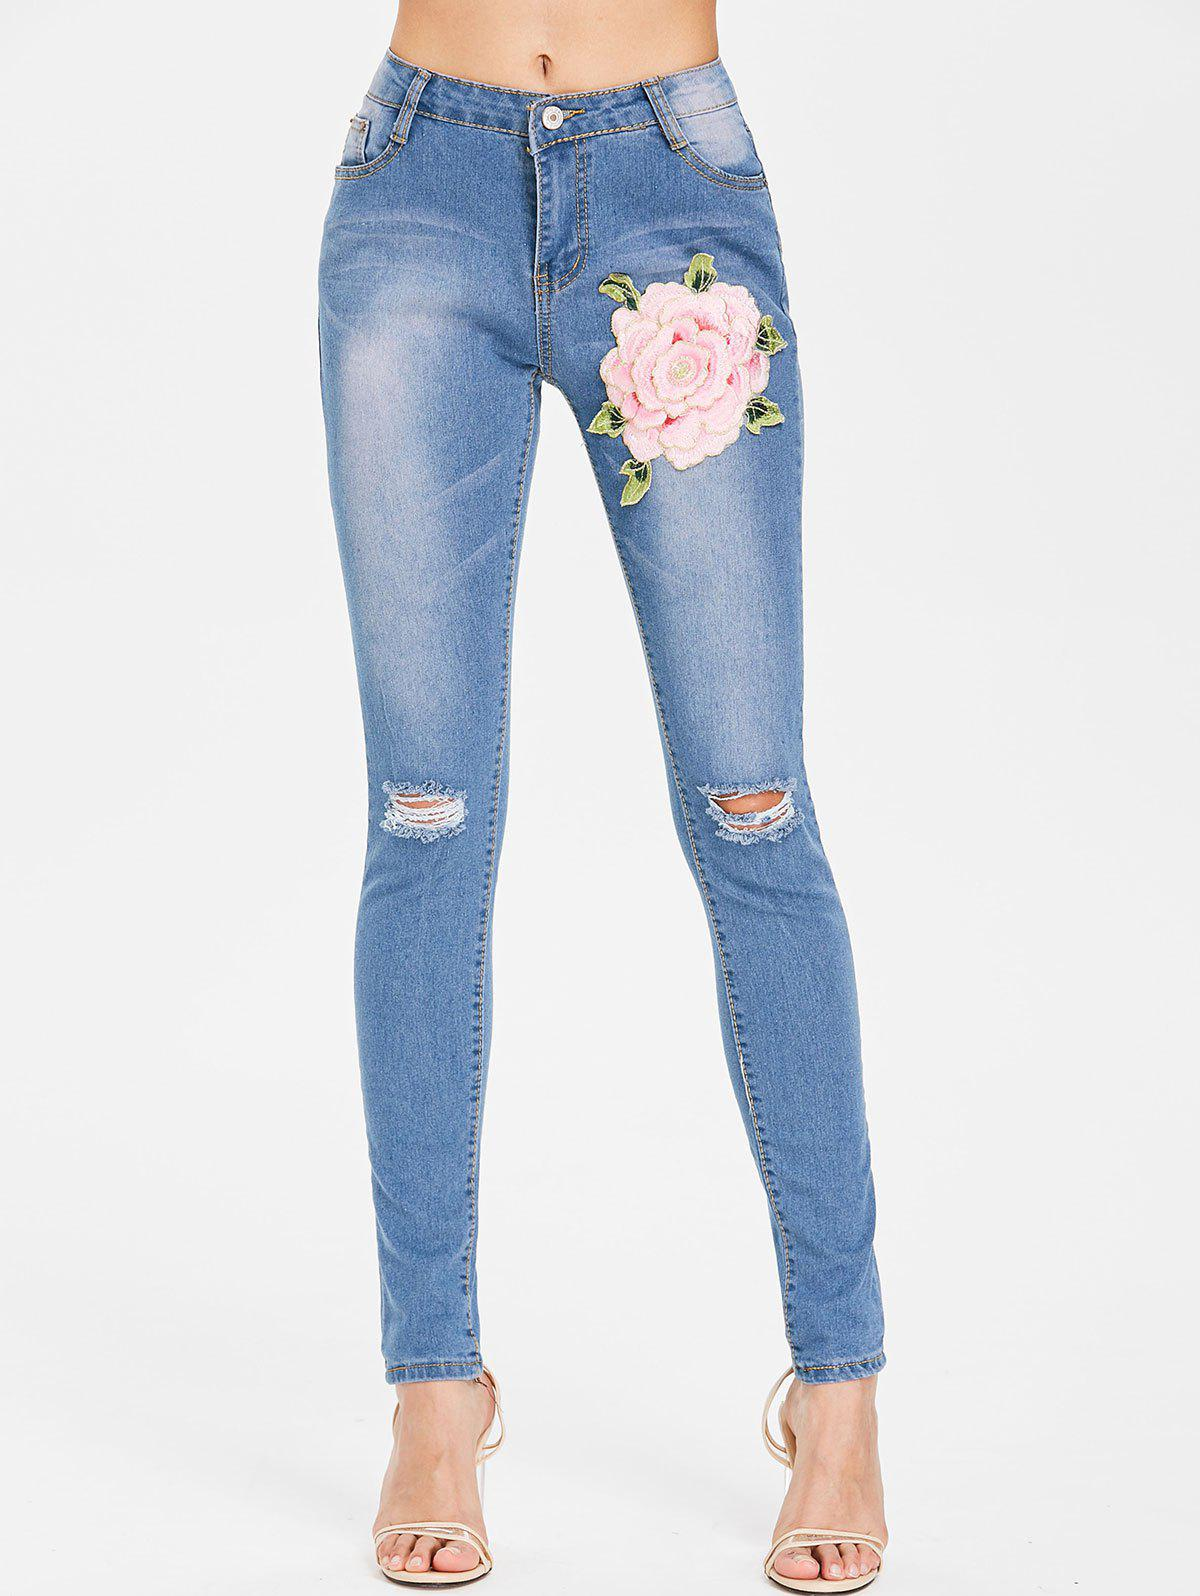 Trendy Floral Embroidery Ripped Jeans